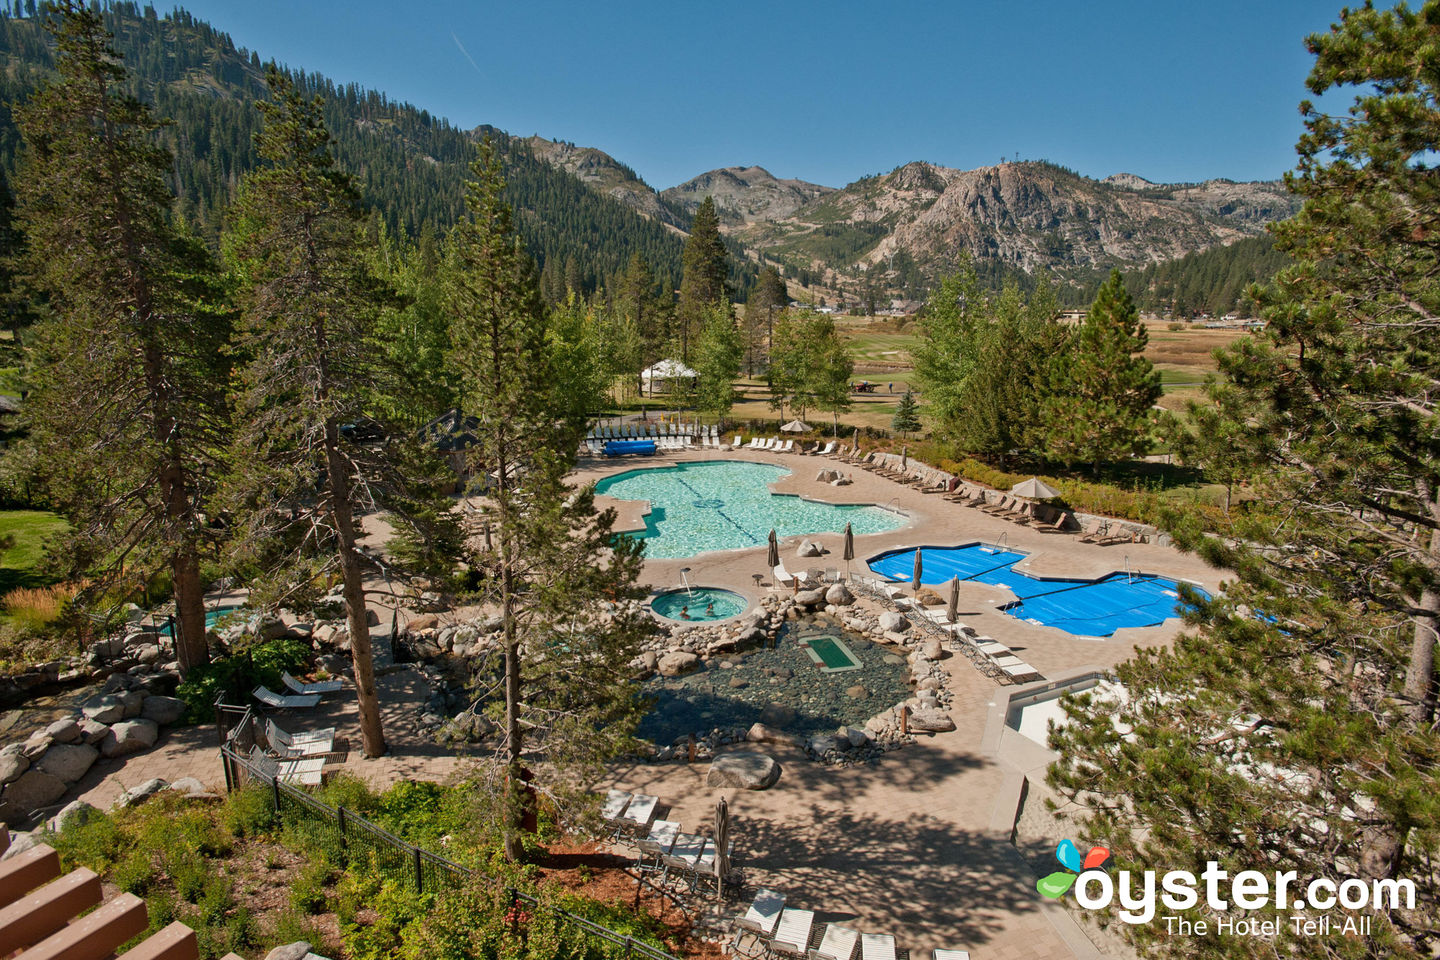 Lake Tahoe Hotels >> The Best Kid Friendly Hotels In Lake Tahoe Updated 2019 Oyster Com